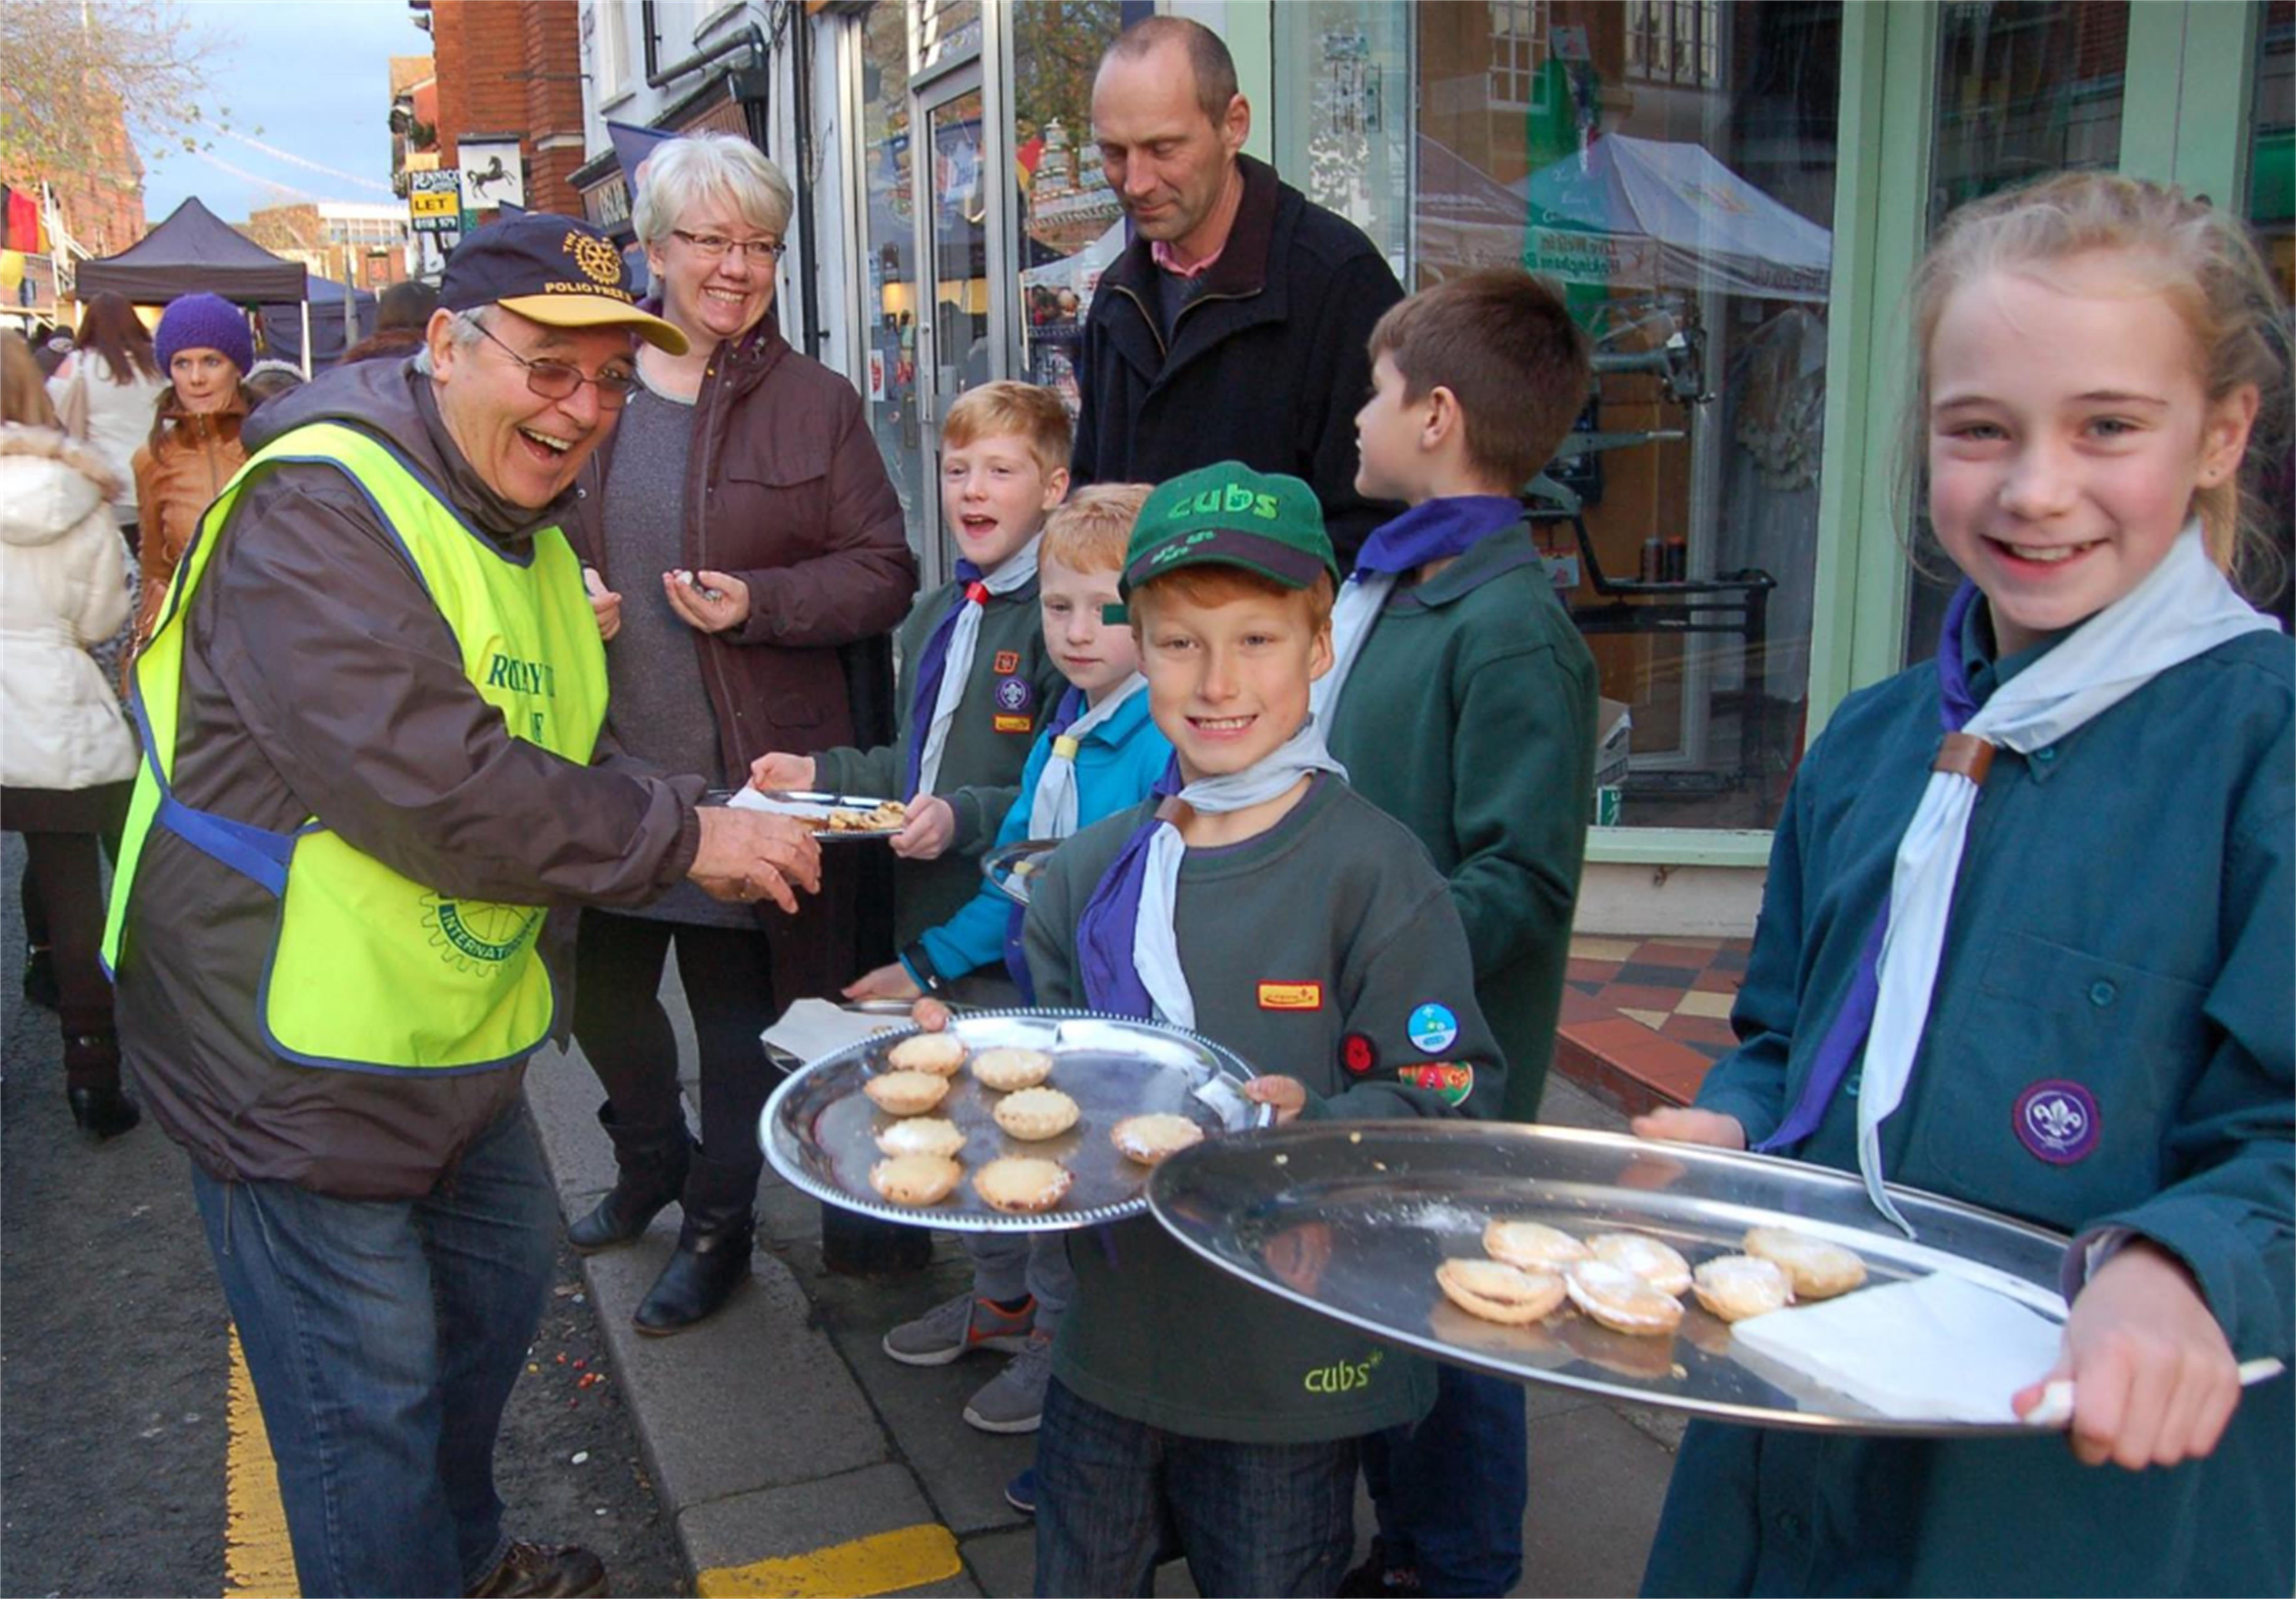 Local charities we support - Cubs, scouts and guides